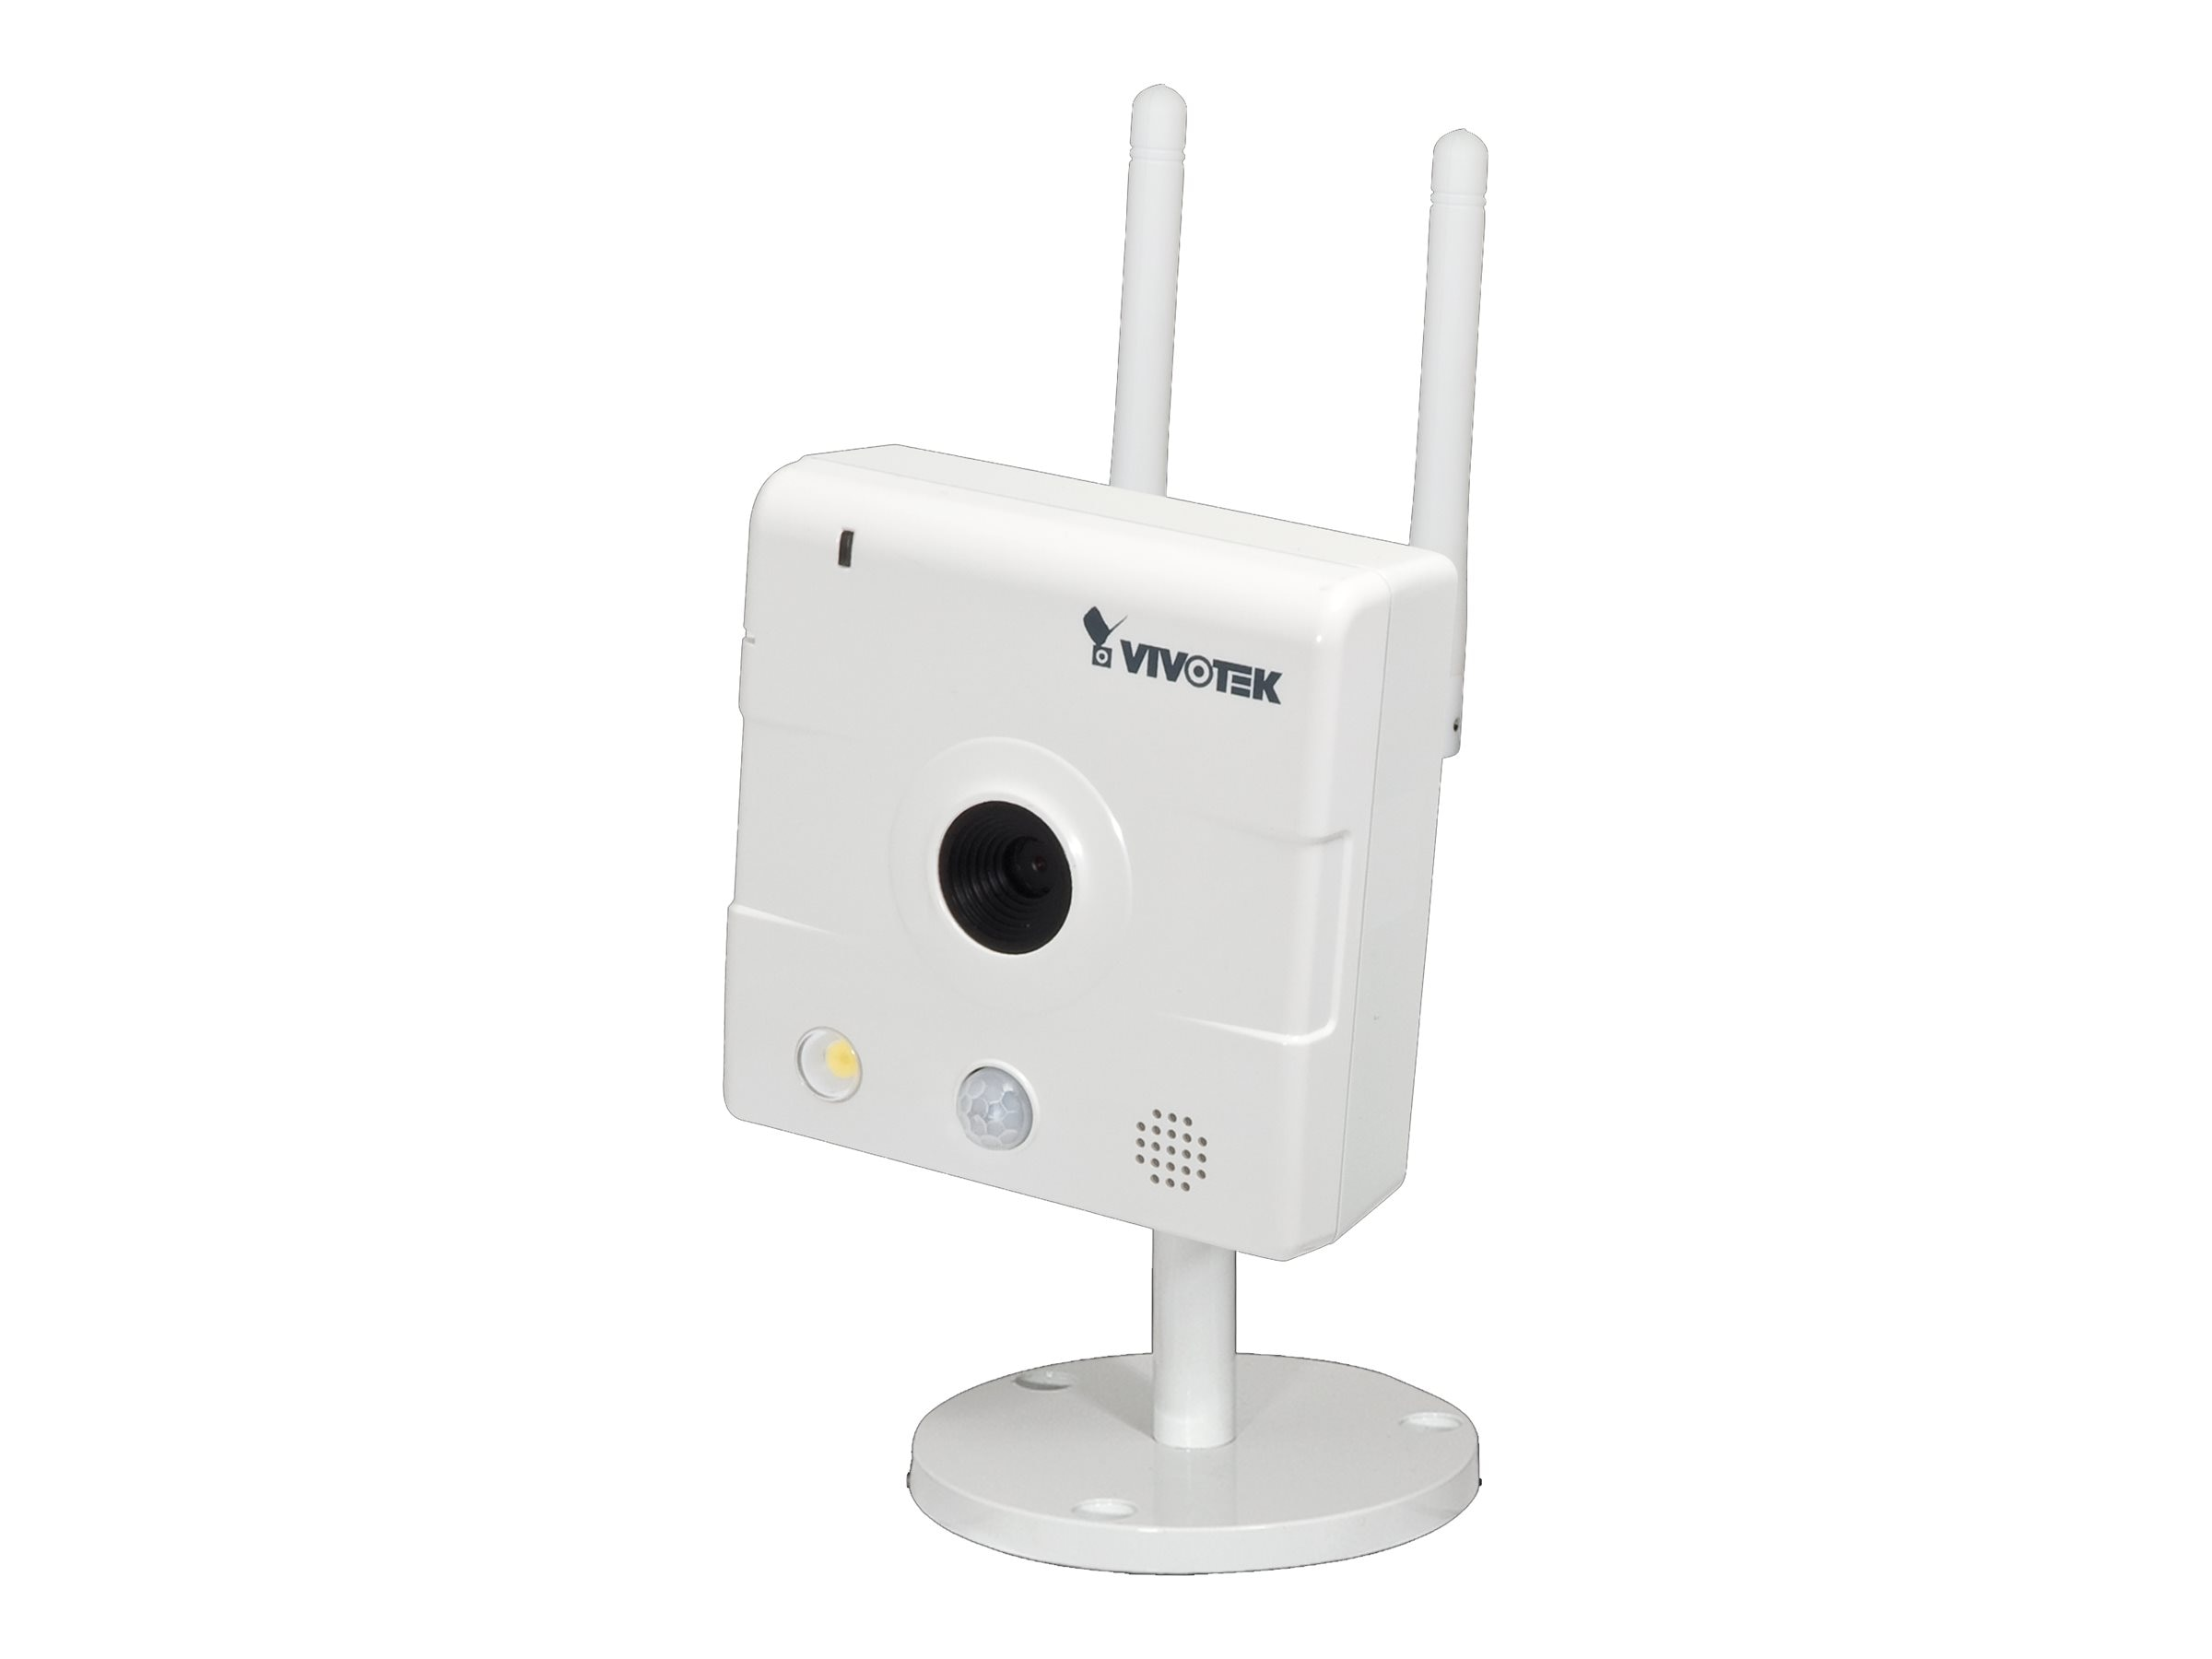 Vivotek IP8133W 1MP Fixed Network Wireless Home Security Camera, IP8133W